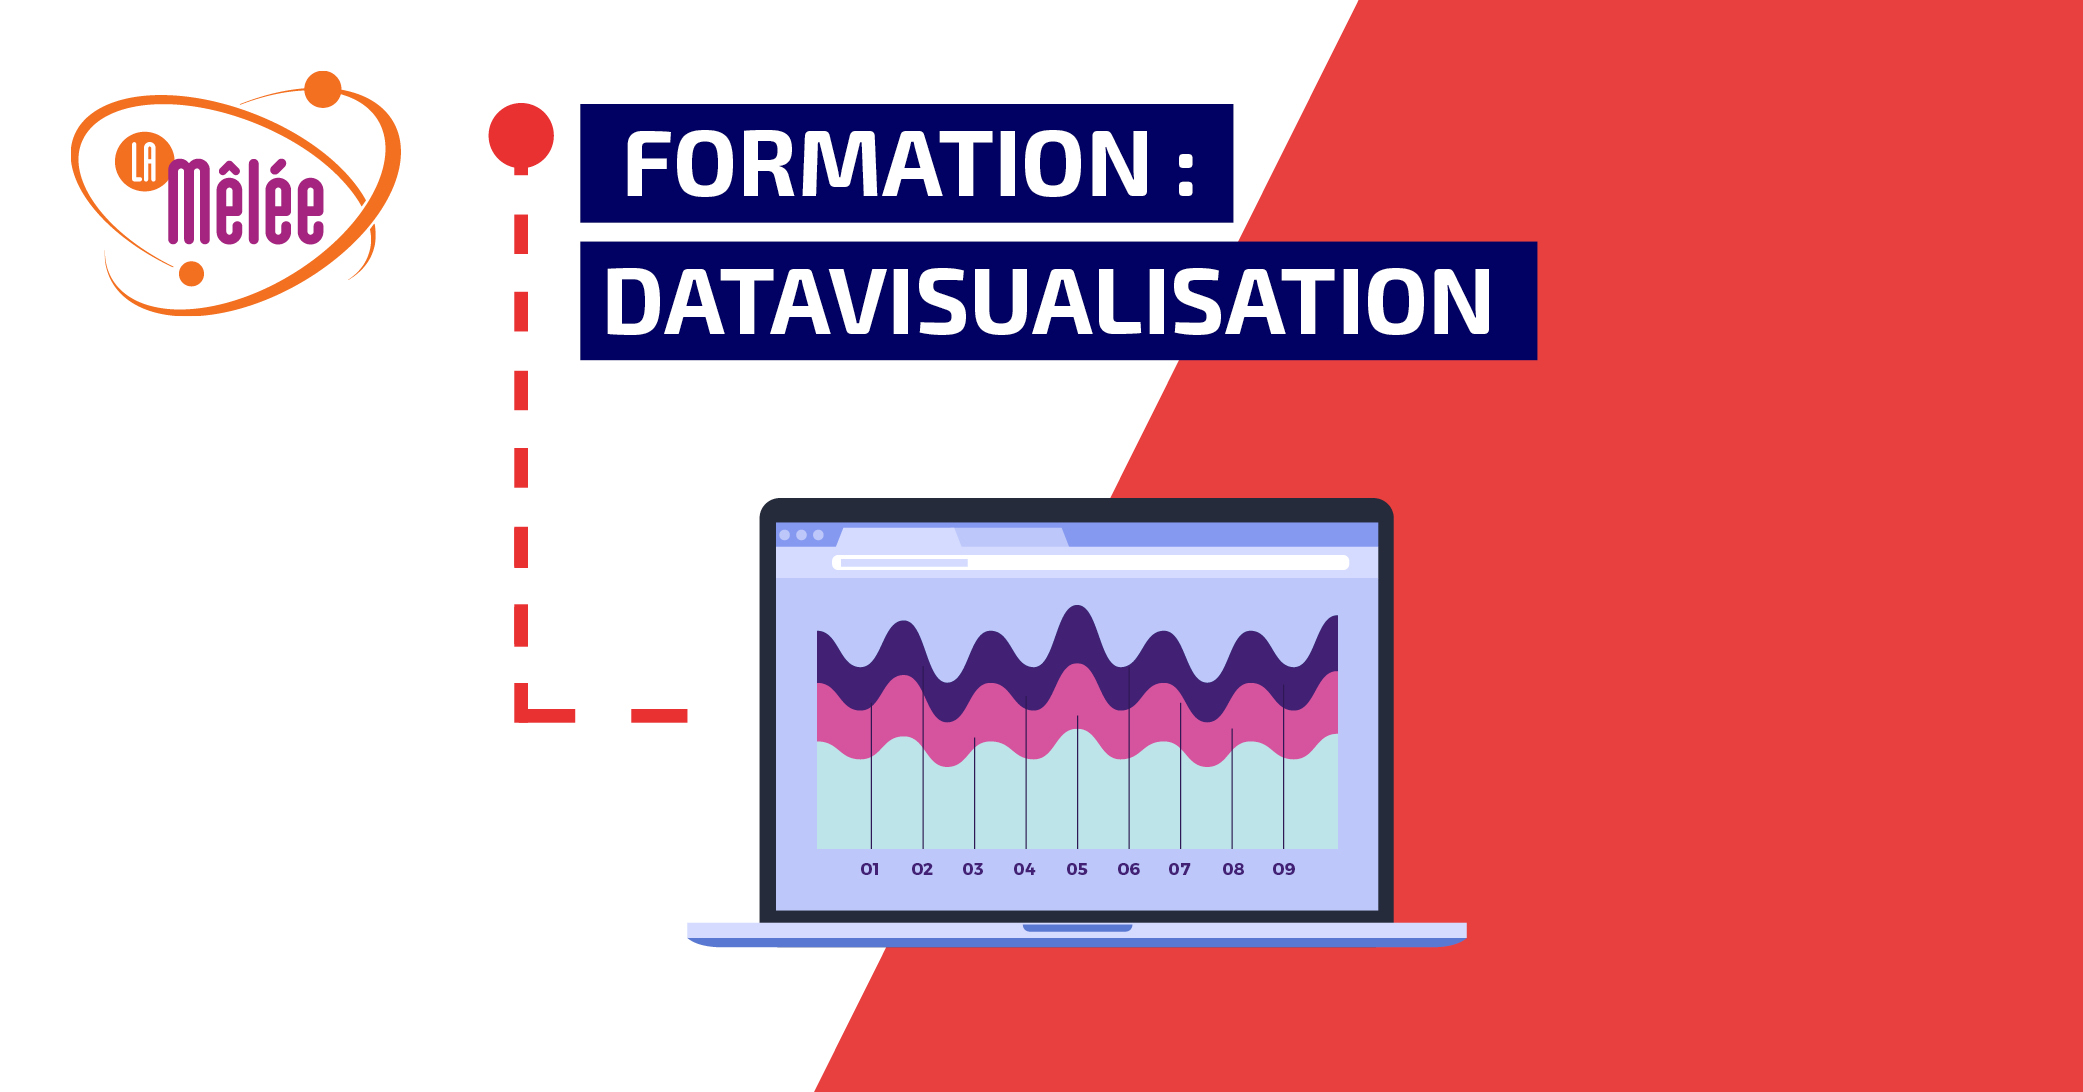 Formation : Datavisualisation